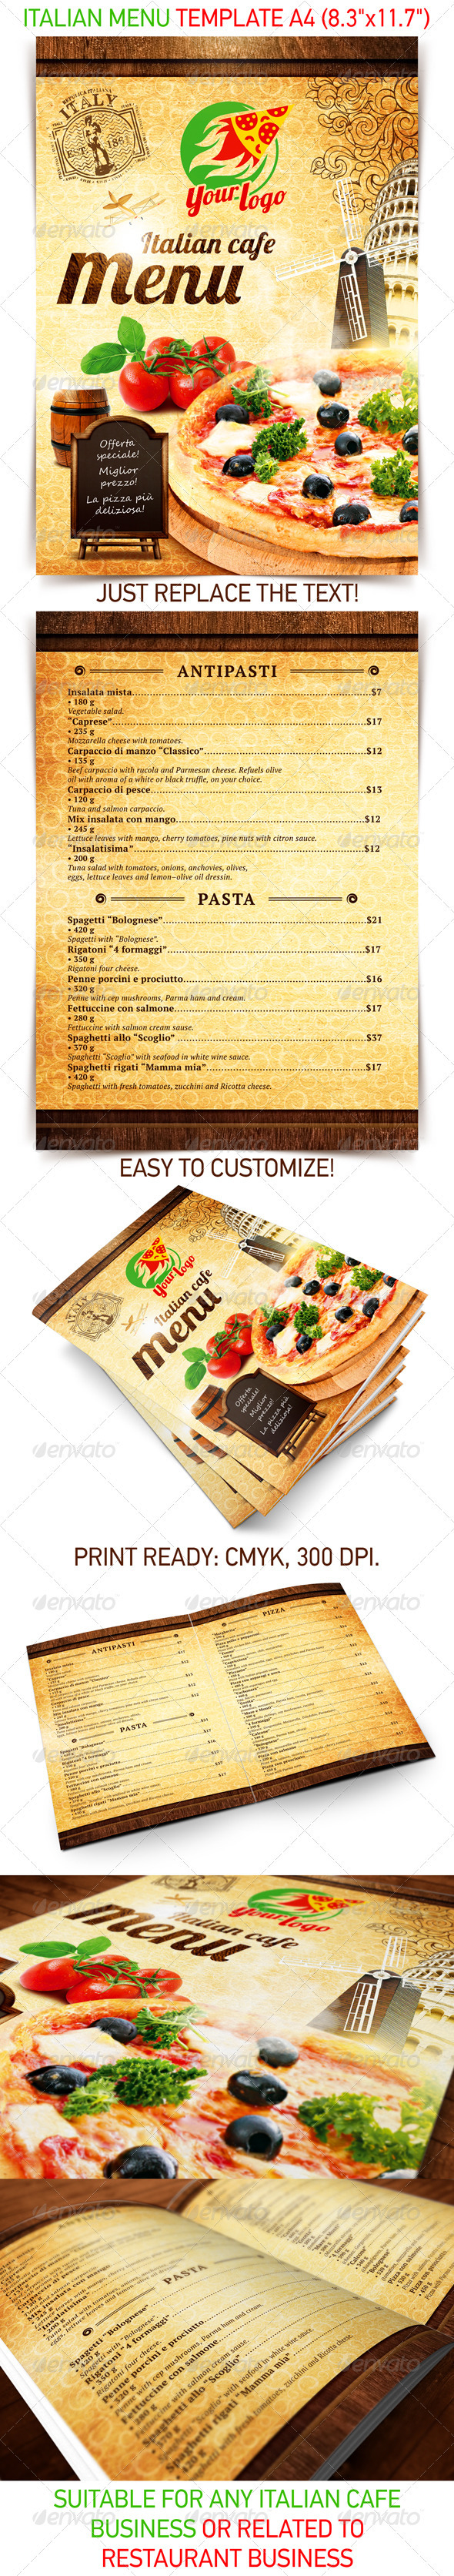 Italian Menu Template - Food Menus Print Templates